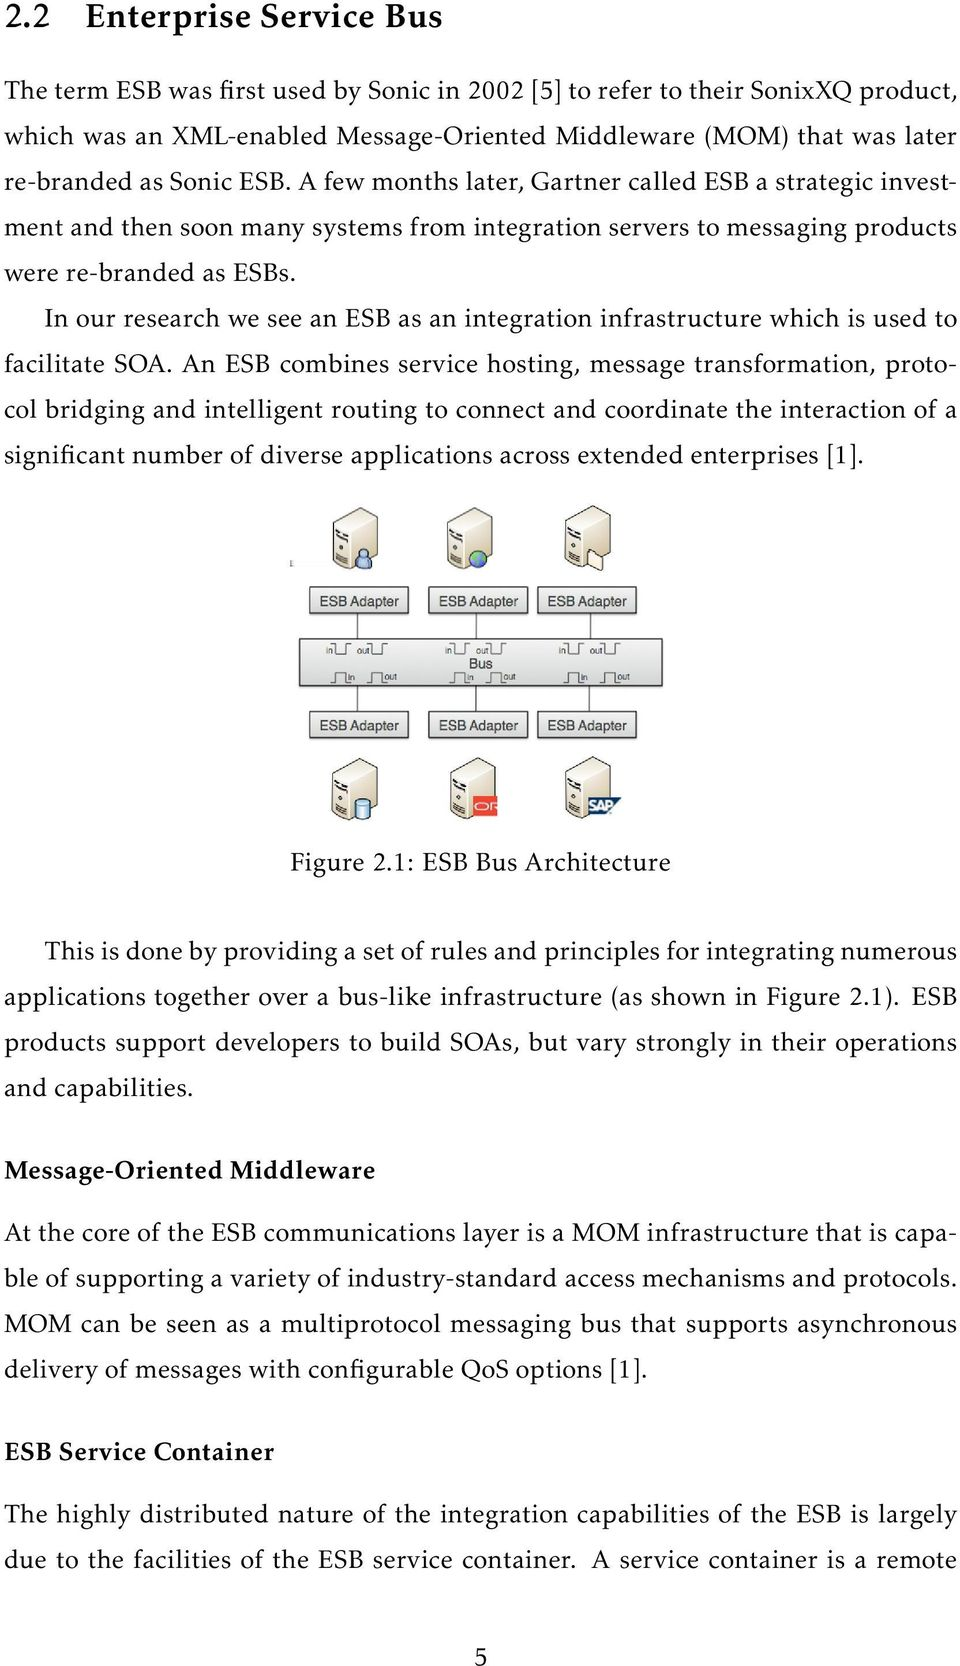 In our research we see an ESB as an integration infrastructure which is used to facilitate SOA.